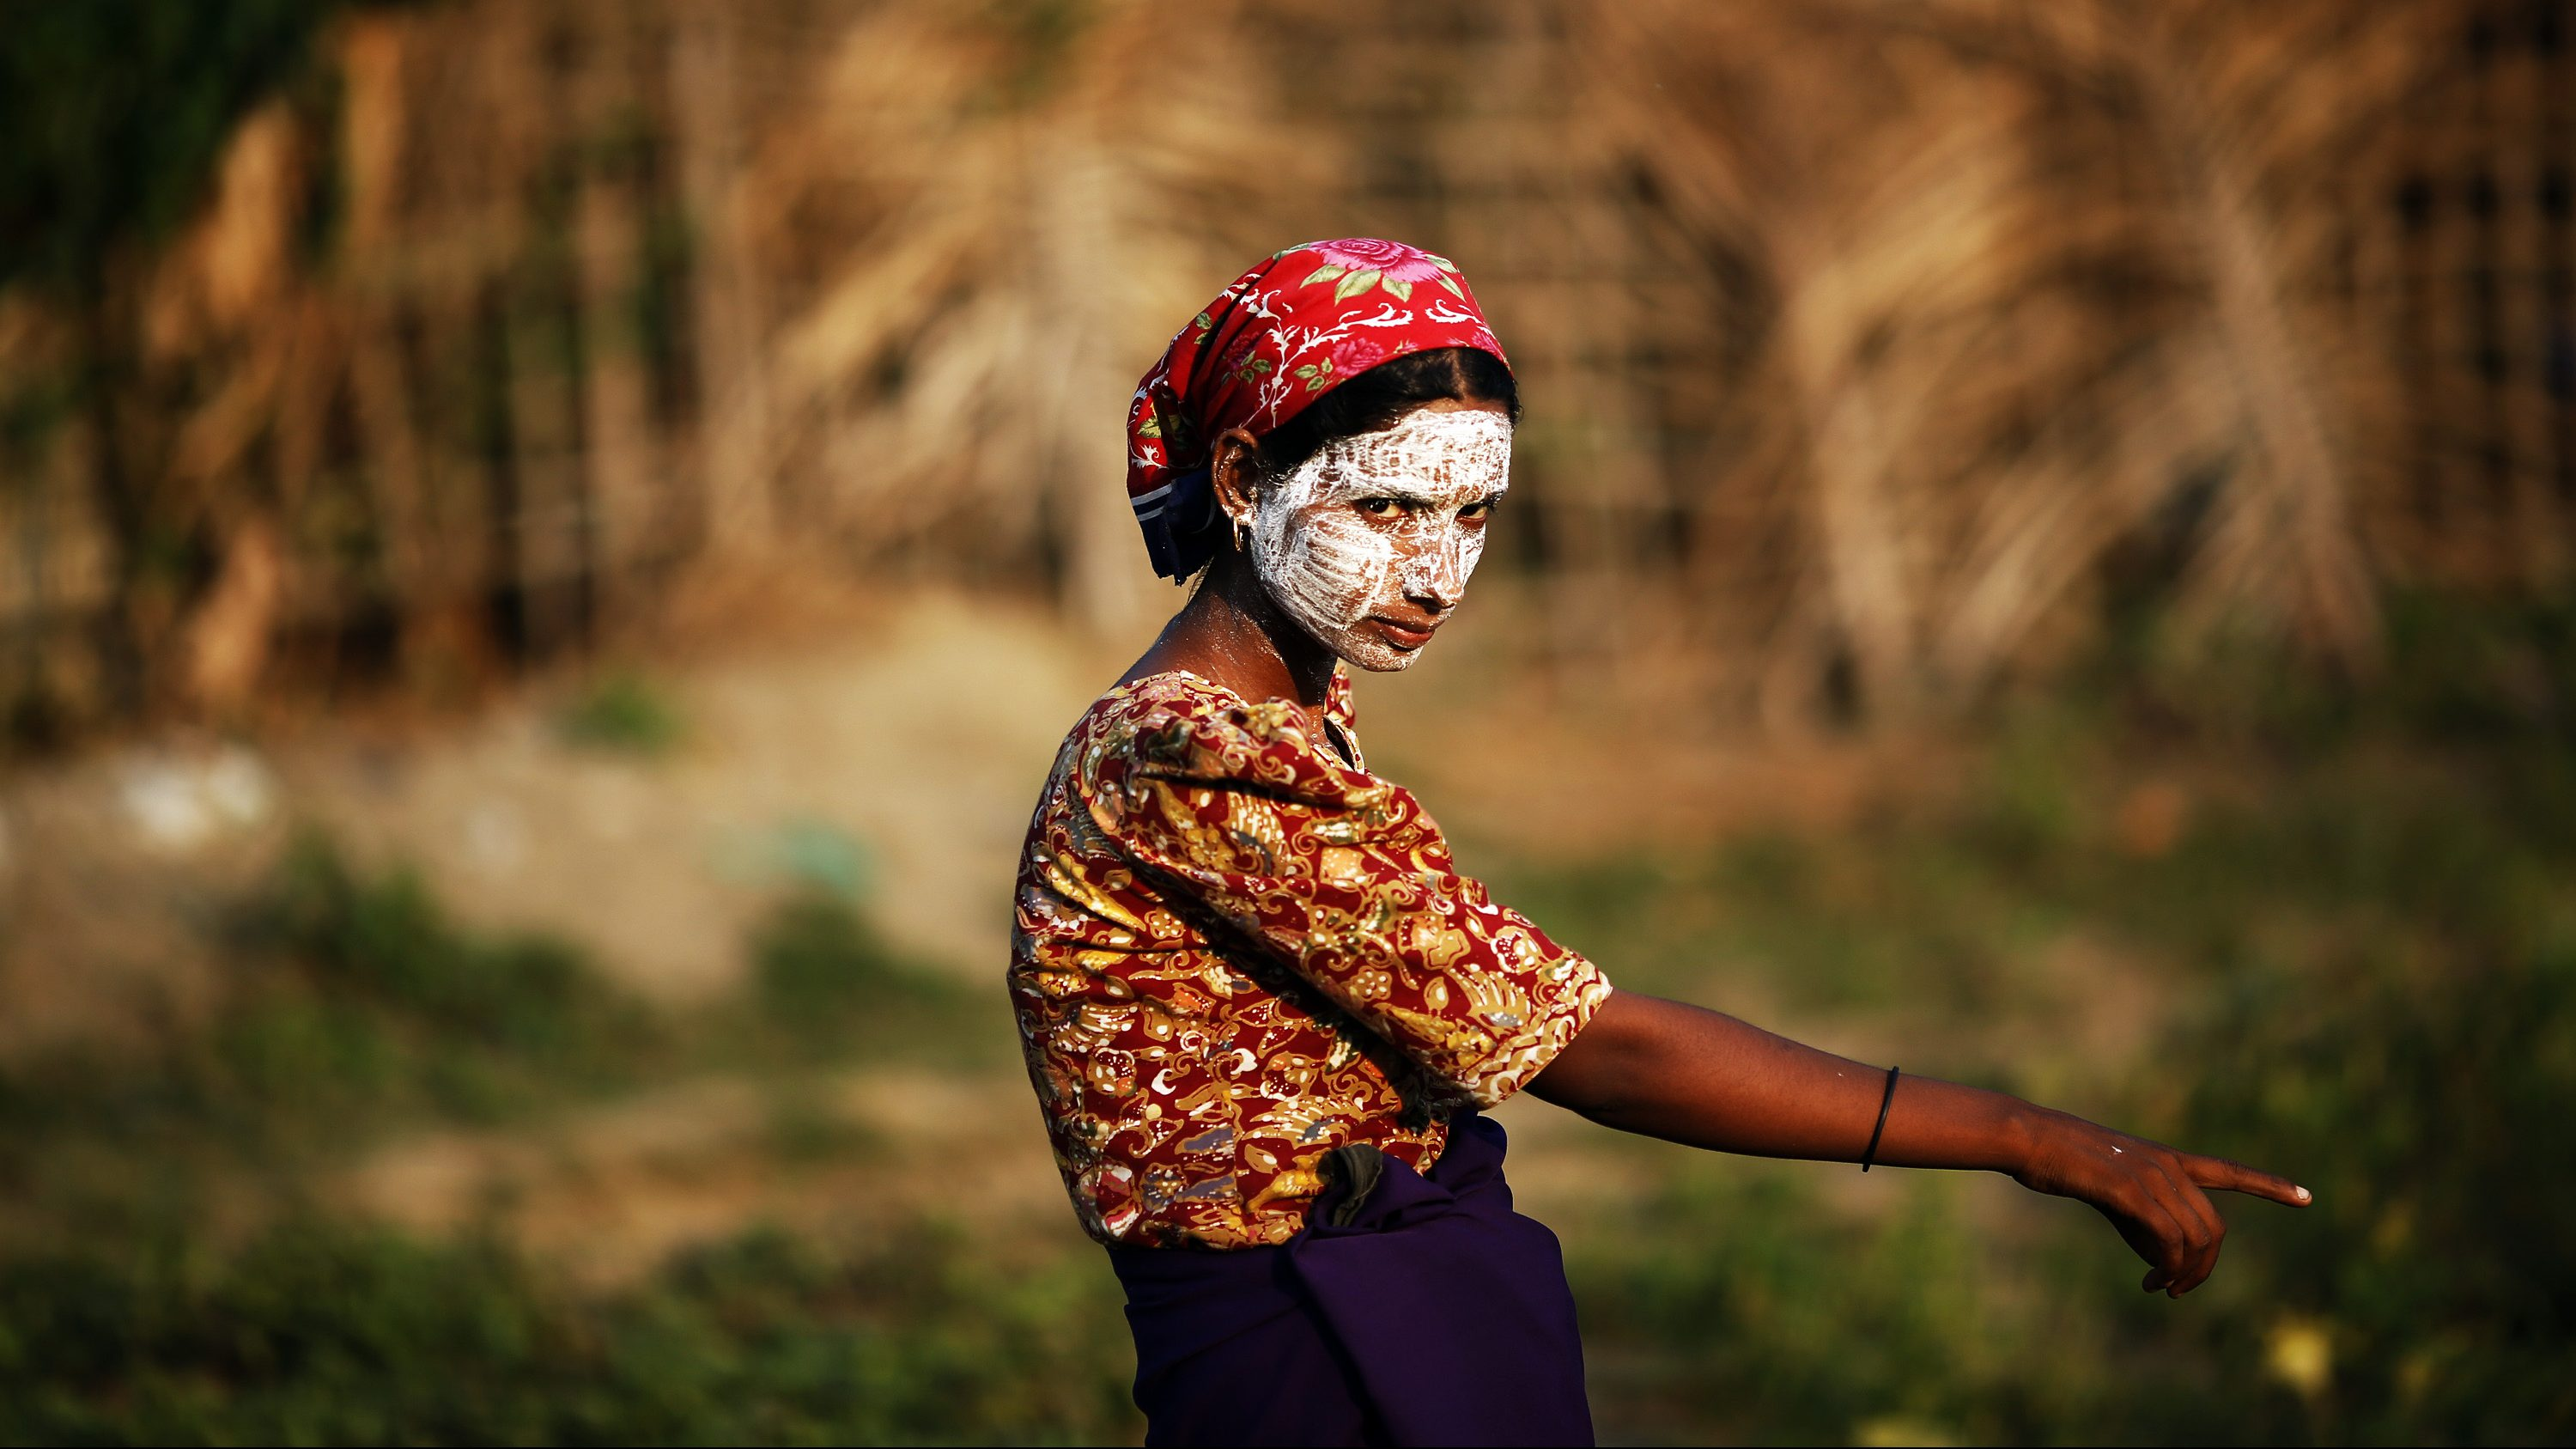 A Rohingya Muslim woman wearing traditional thanaka paste on her face gestures in a camp for people displaced by violence, near Sittwe April 26, 2013. Myanmar authorities have begun segregating minority Muslims from the Buddhist majority in troubled areas of a country in transition. Picture taken April 26, 2013. To match Special Report MYANMAR-ROHINGYA/ REUTERS/Damir Sagolj (MYANMAR - Tags: POLITICS RELIGION CONFLICT) - GM1E95F0LFW01